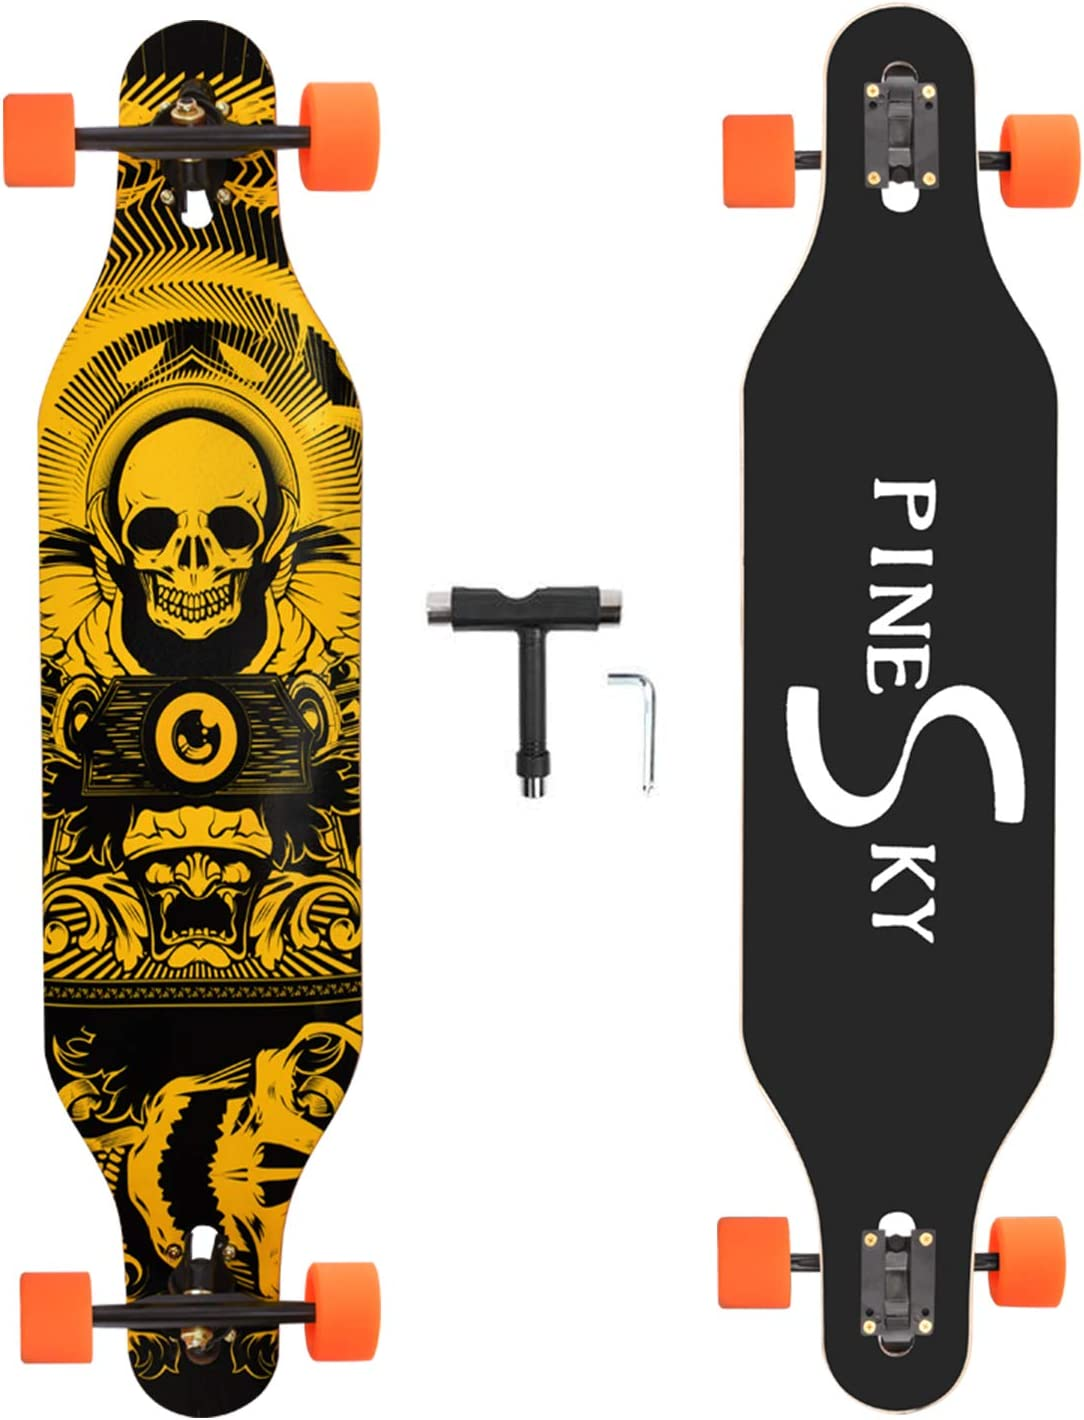 PINESKY 41 Inch Longboard Skateboard Complete Skateboard Cruiser for Cruising Carving Free-Style and Downhill with T-Tool